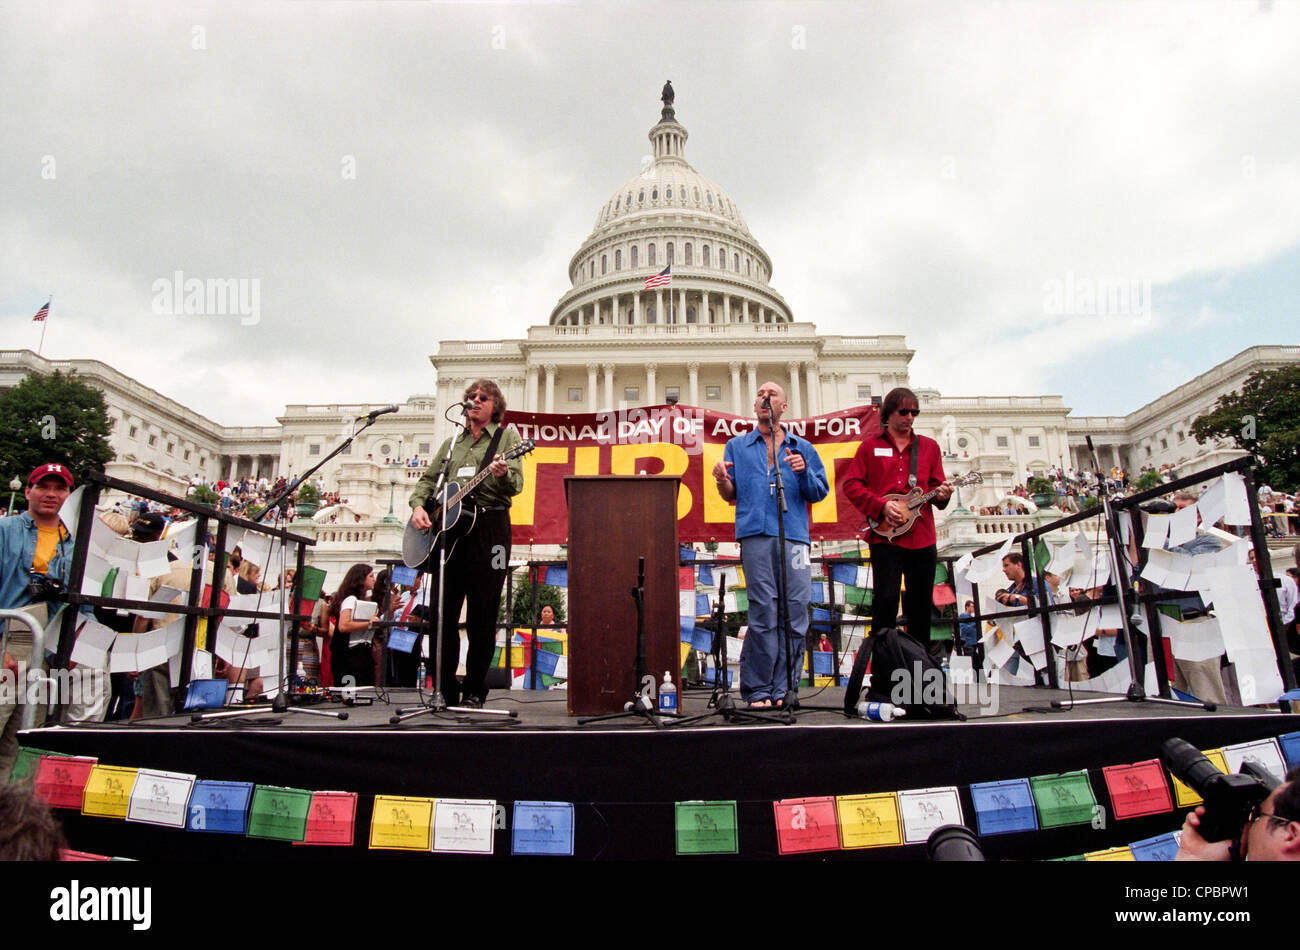 Singer Michael Stipe, guitarist Peter Buck and Mike Mills of REM perform at the Rally for Tibet at the US Capitol - Stock Image